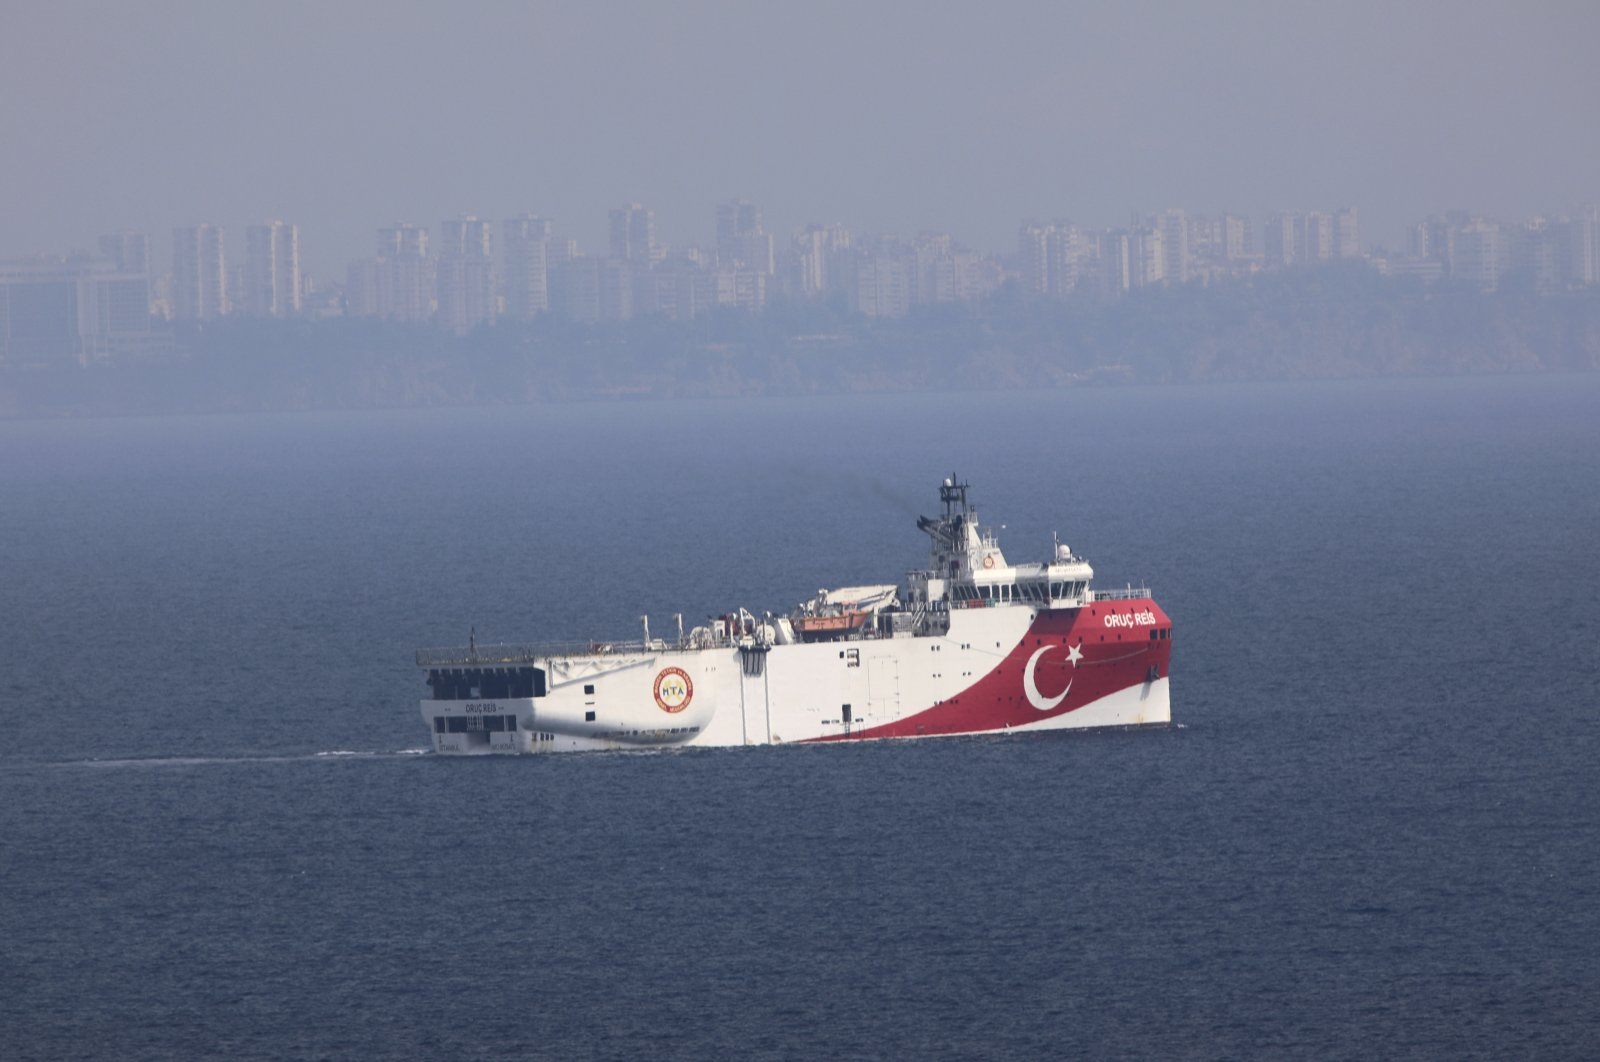 A view of Turkey's research vessel Oruç Reis anchored off the coast of Antalya on the Mediterranean, Turkey, Sept. 27, 2020. (AP Photo)